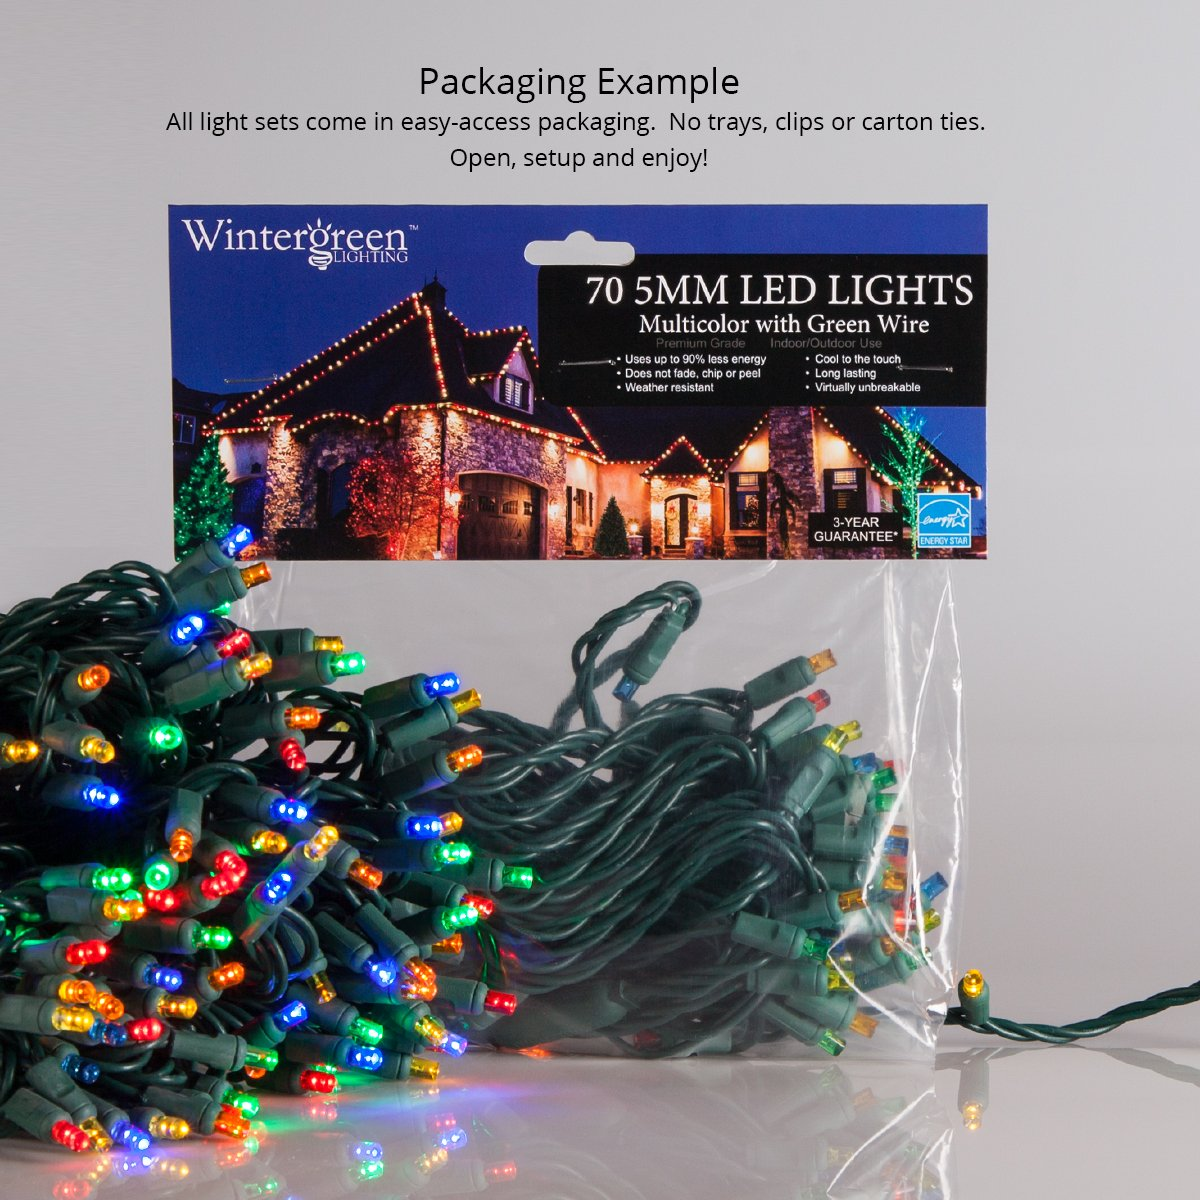 59e93286d4 5mm LED Wide Angle Warm White Prelamped Light Set, Green Wire - 70 5mm Warm  White LED Christmas Lights, 4